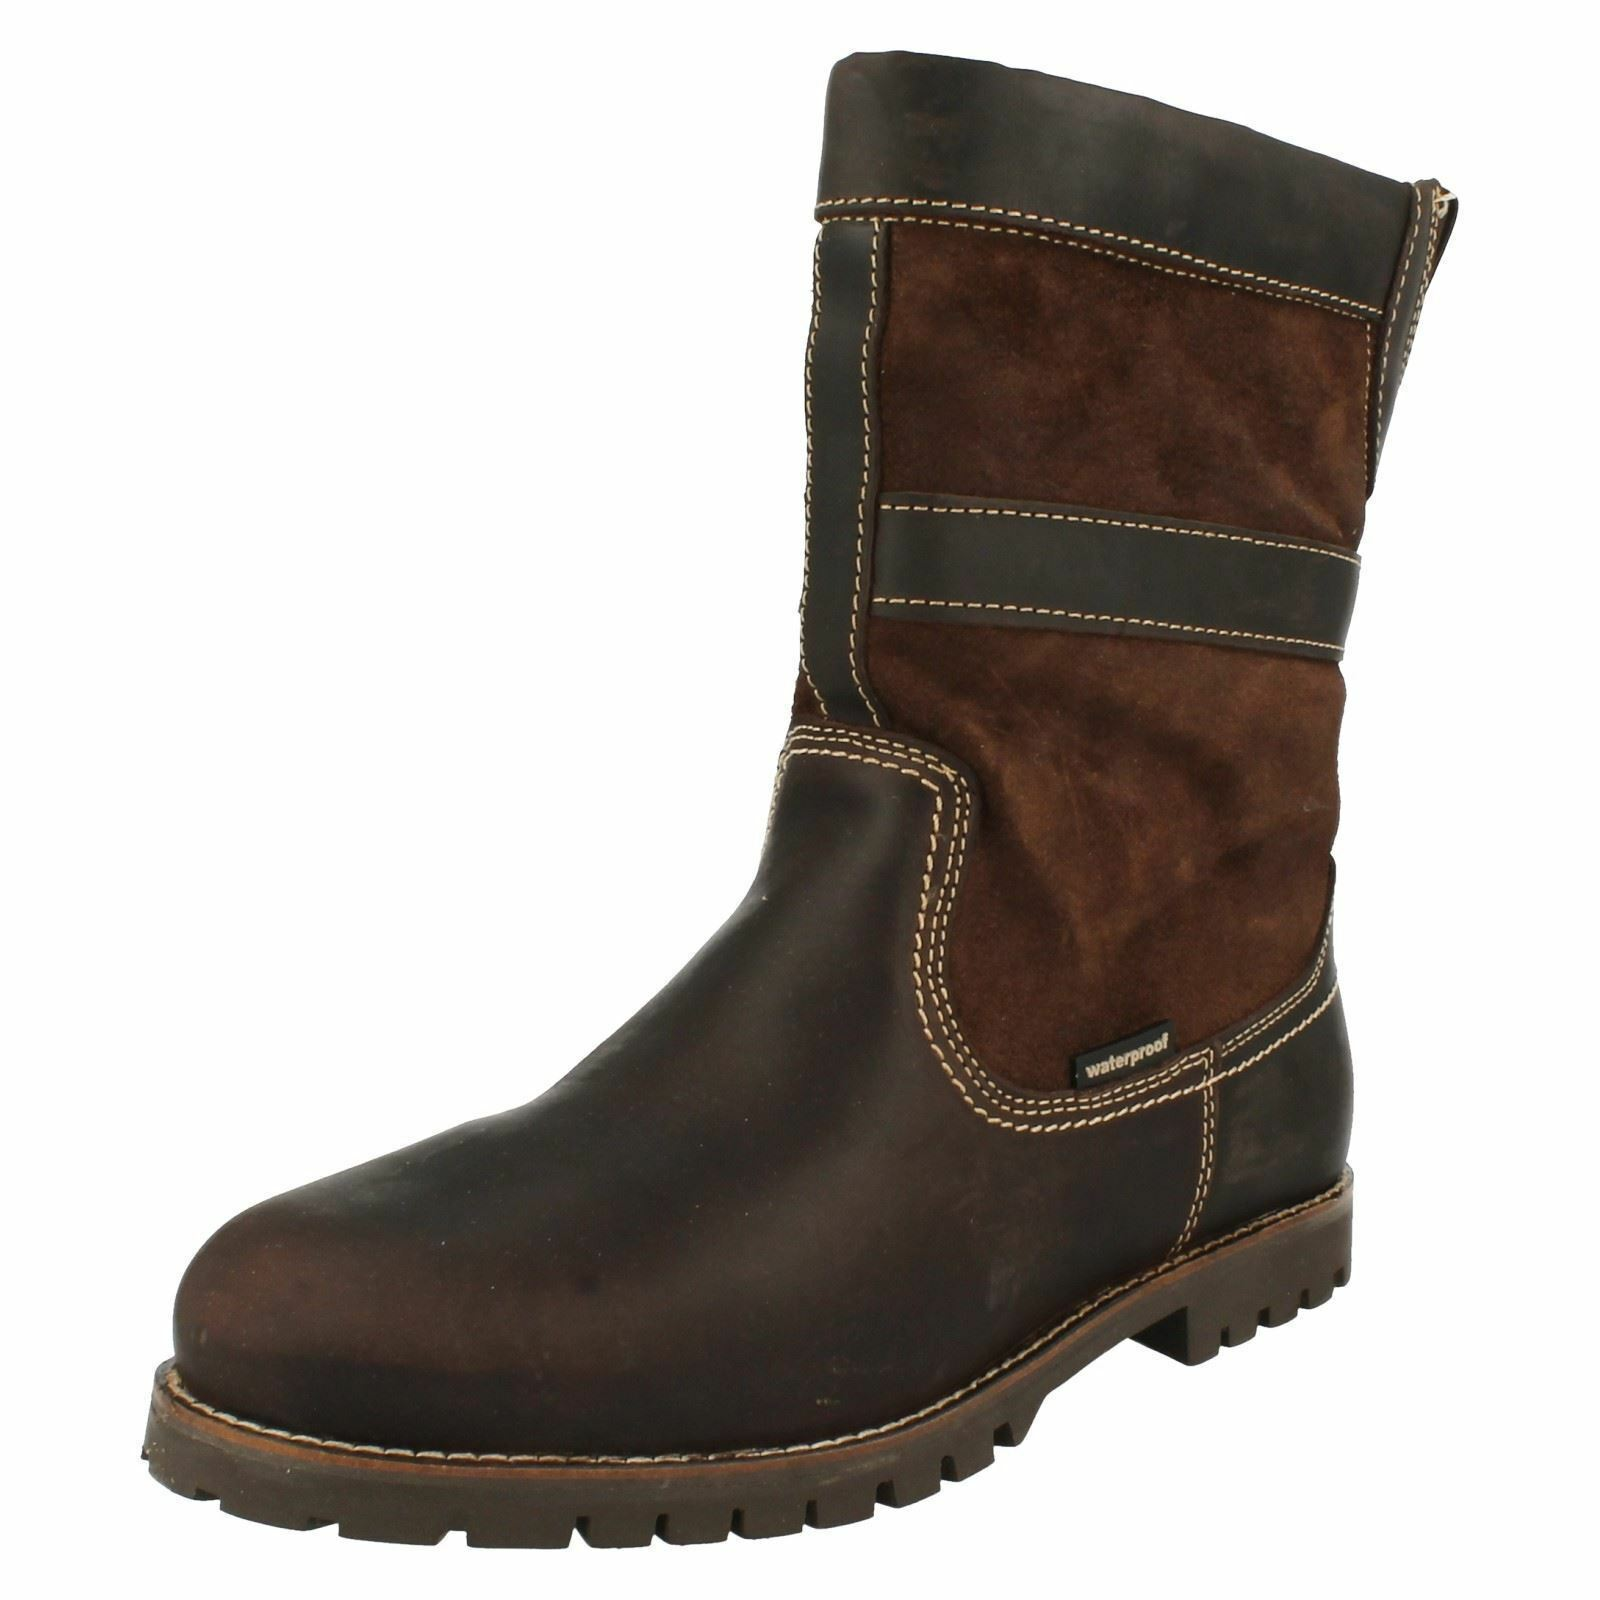 Mens on Patric brown leather / suede pull on Mens boot by Human Nature .00 6dc244